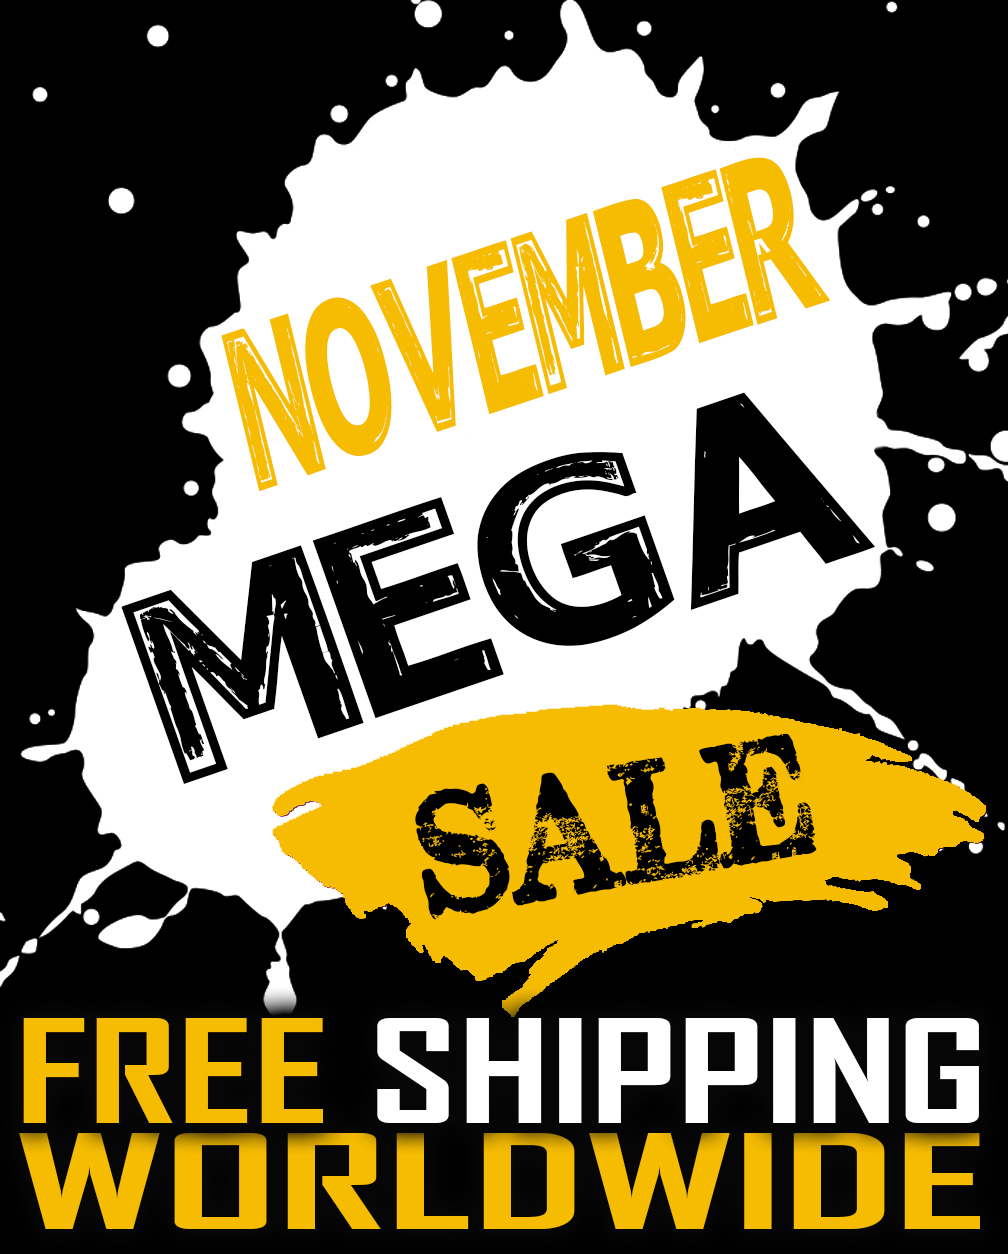 november-mega-sale-free-worldwide-shipping.jpg